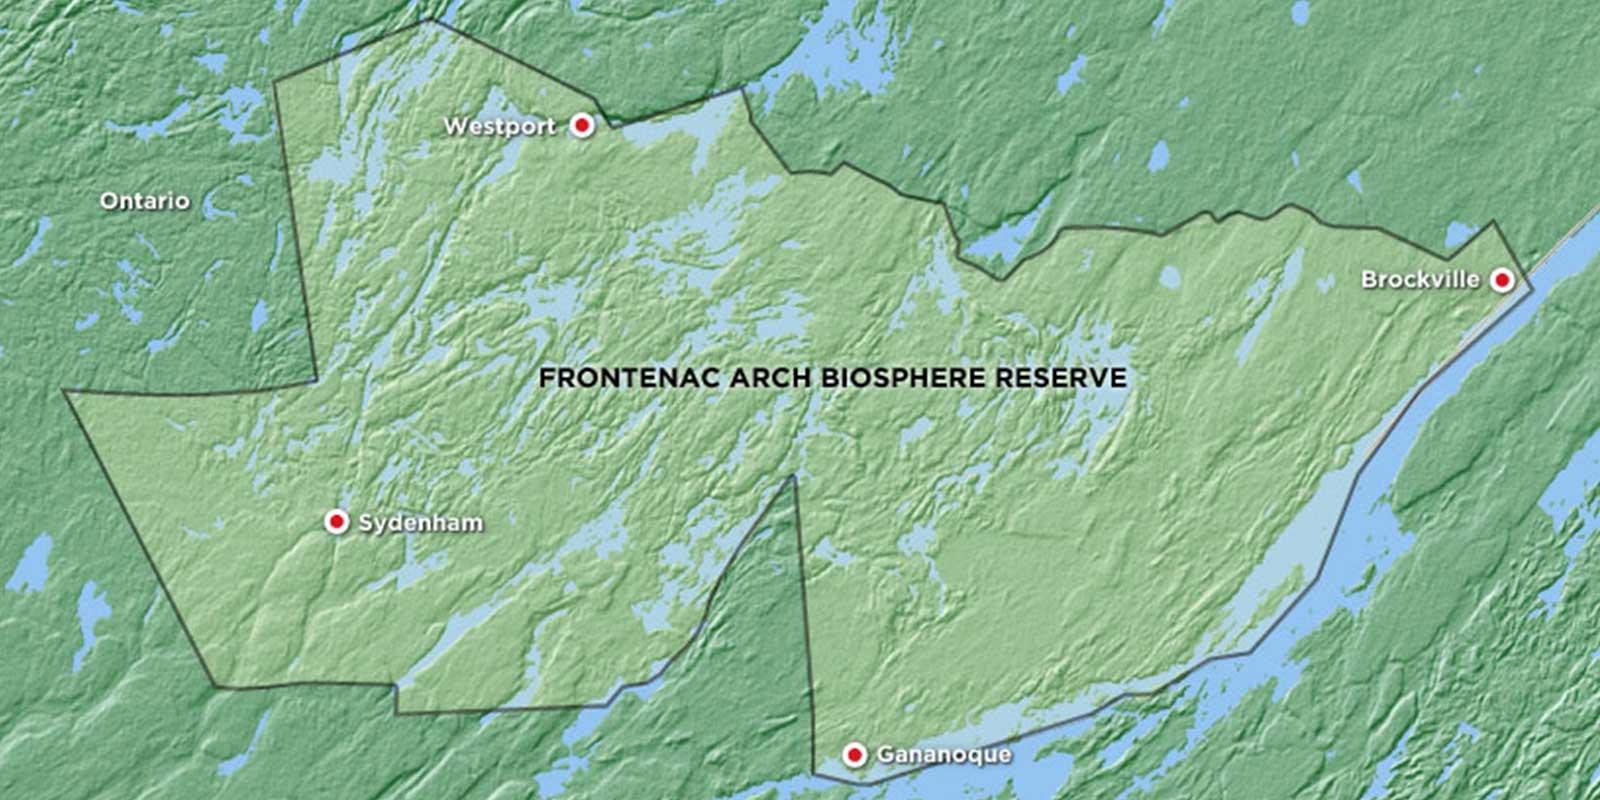 Map of the Frontenac Arch Biosphere